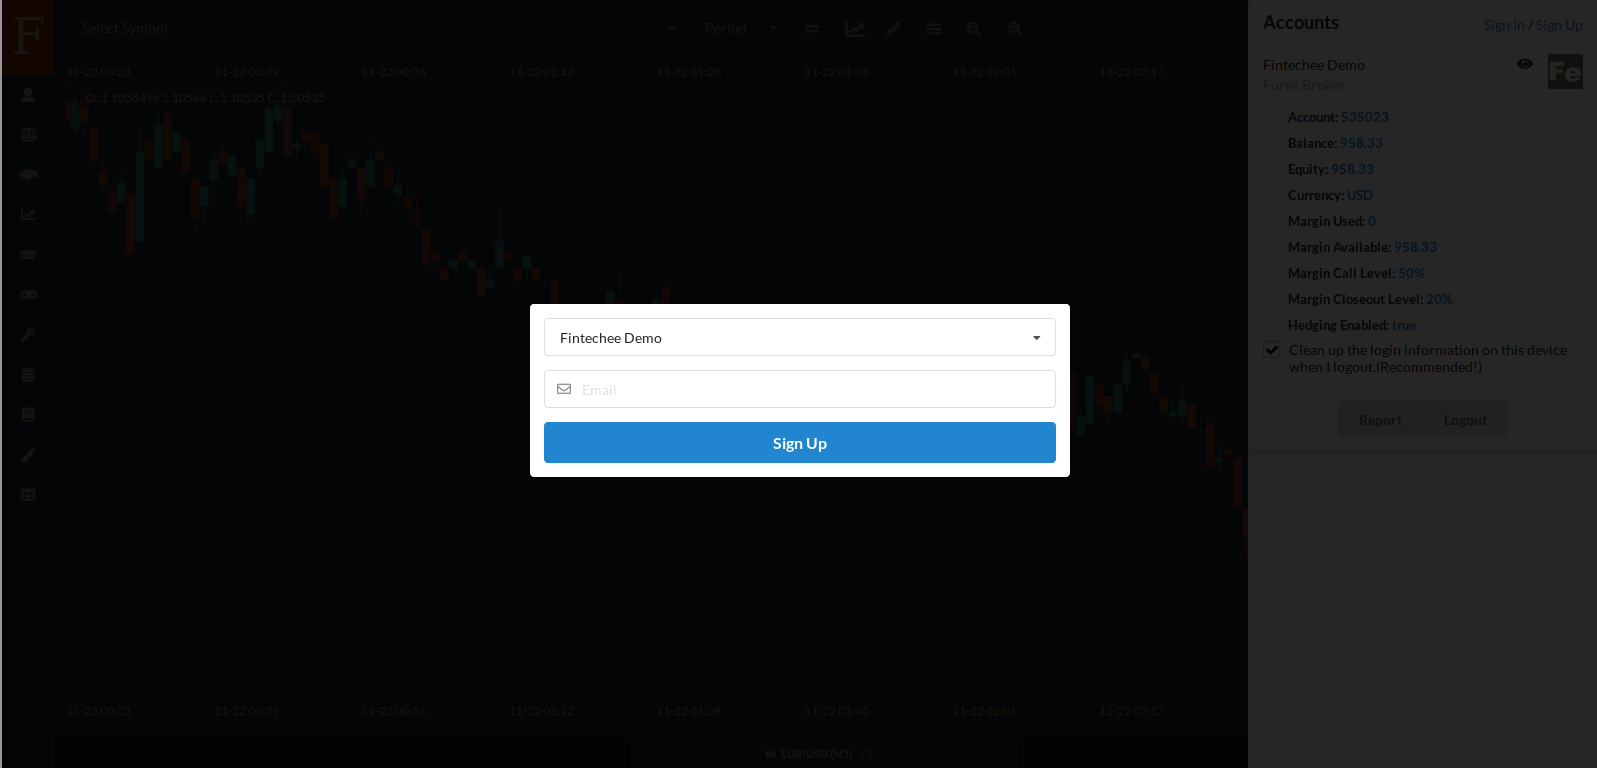 Tutorial for Forex Trading | Basic Functions | Sign up - Fintechee